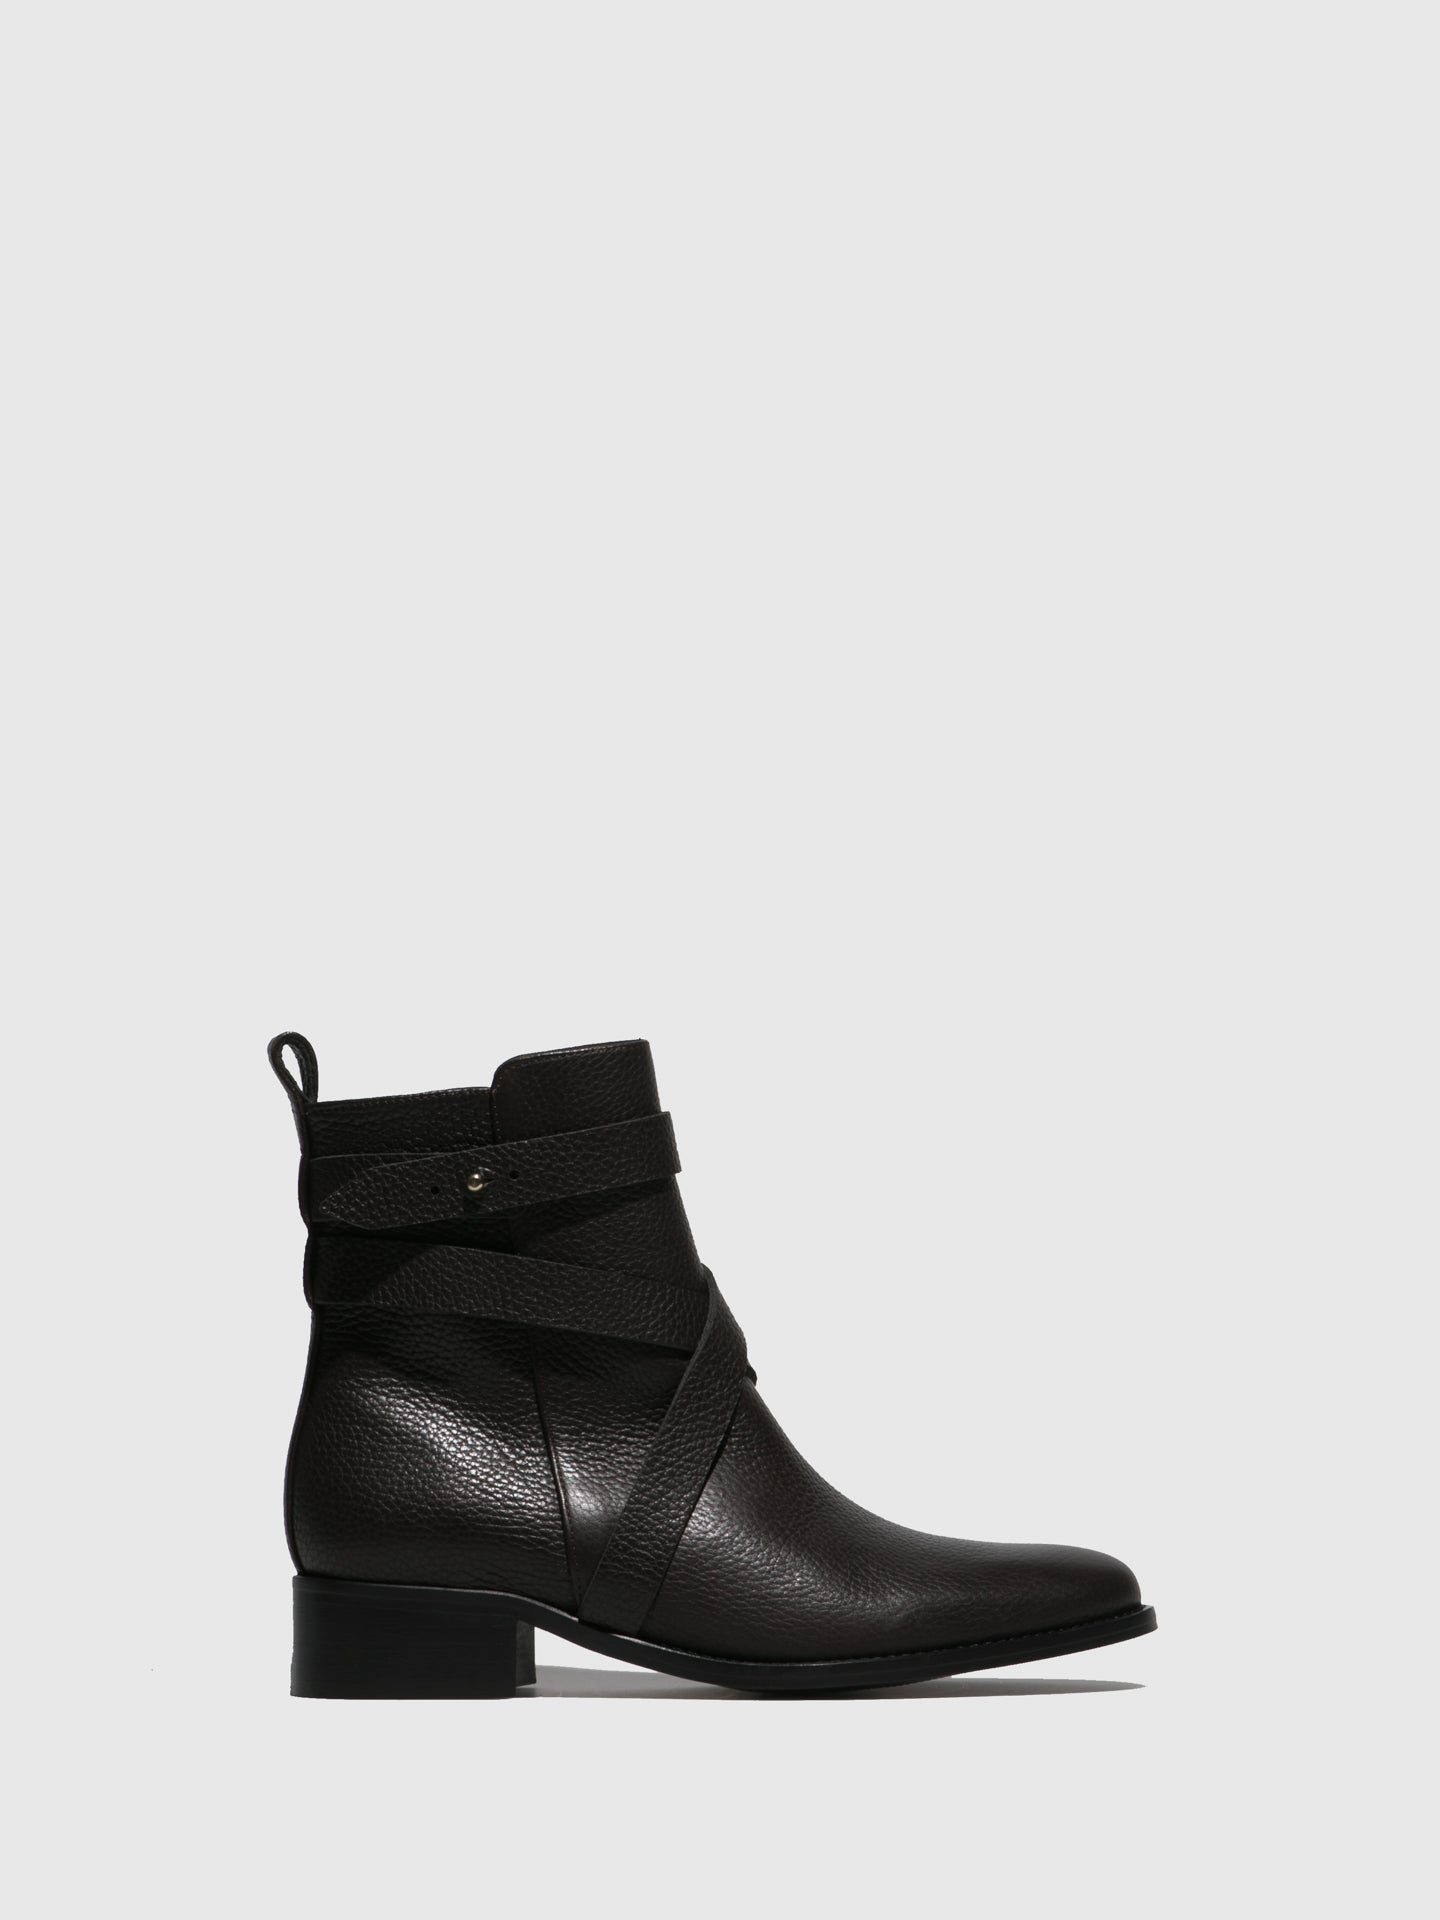 JJ Heitor Brown Zip Up Ankle Boots